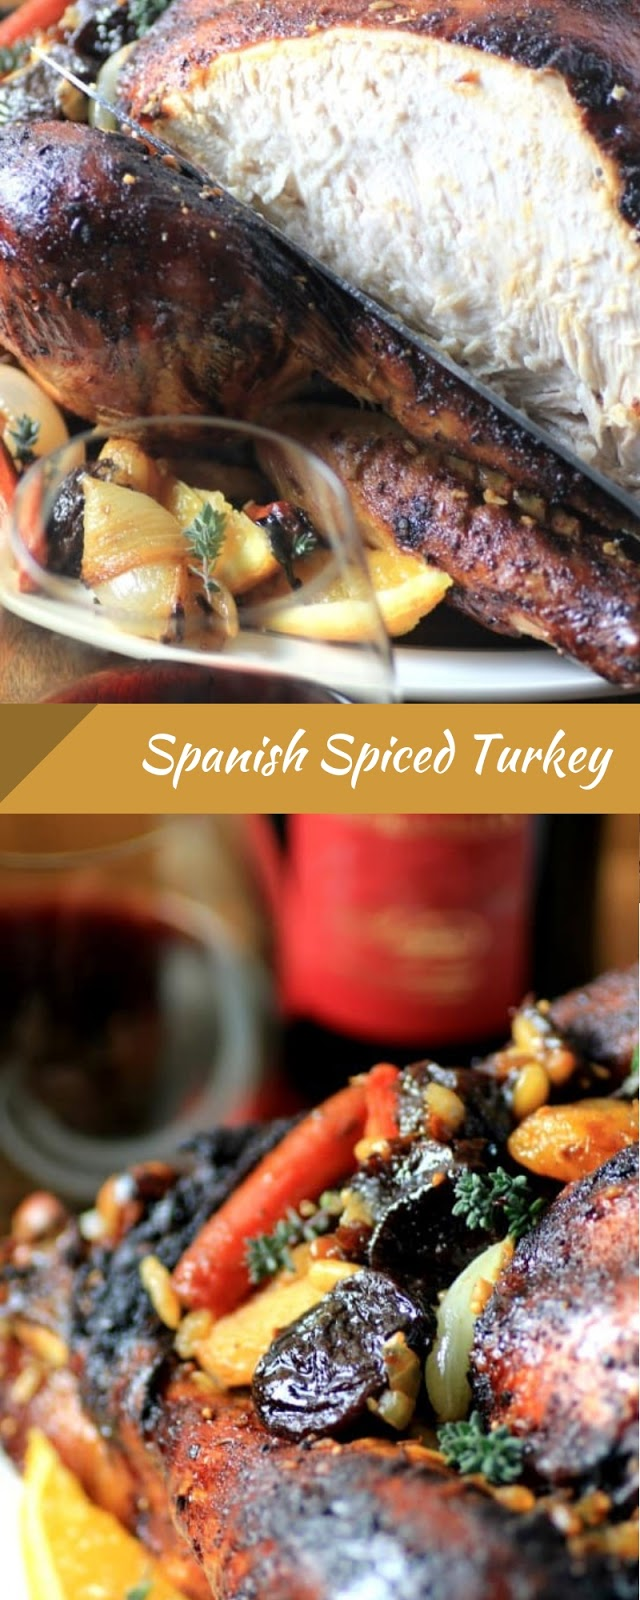 Spanish Spiced Turkey